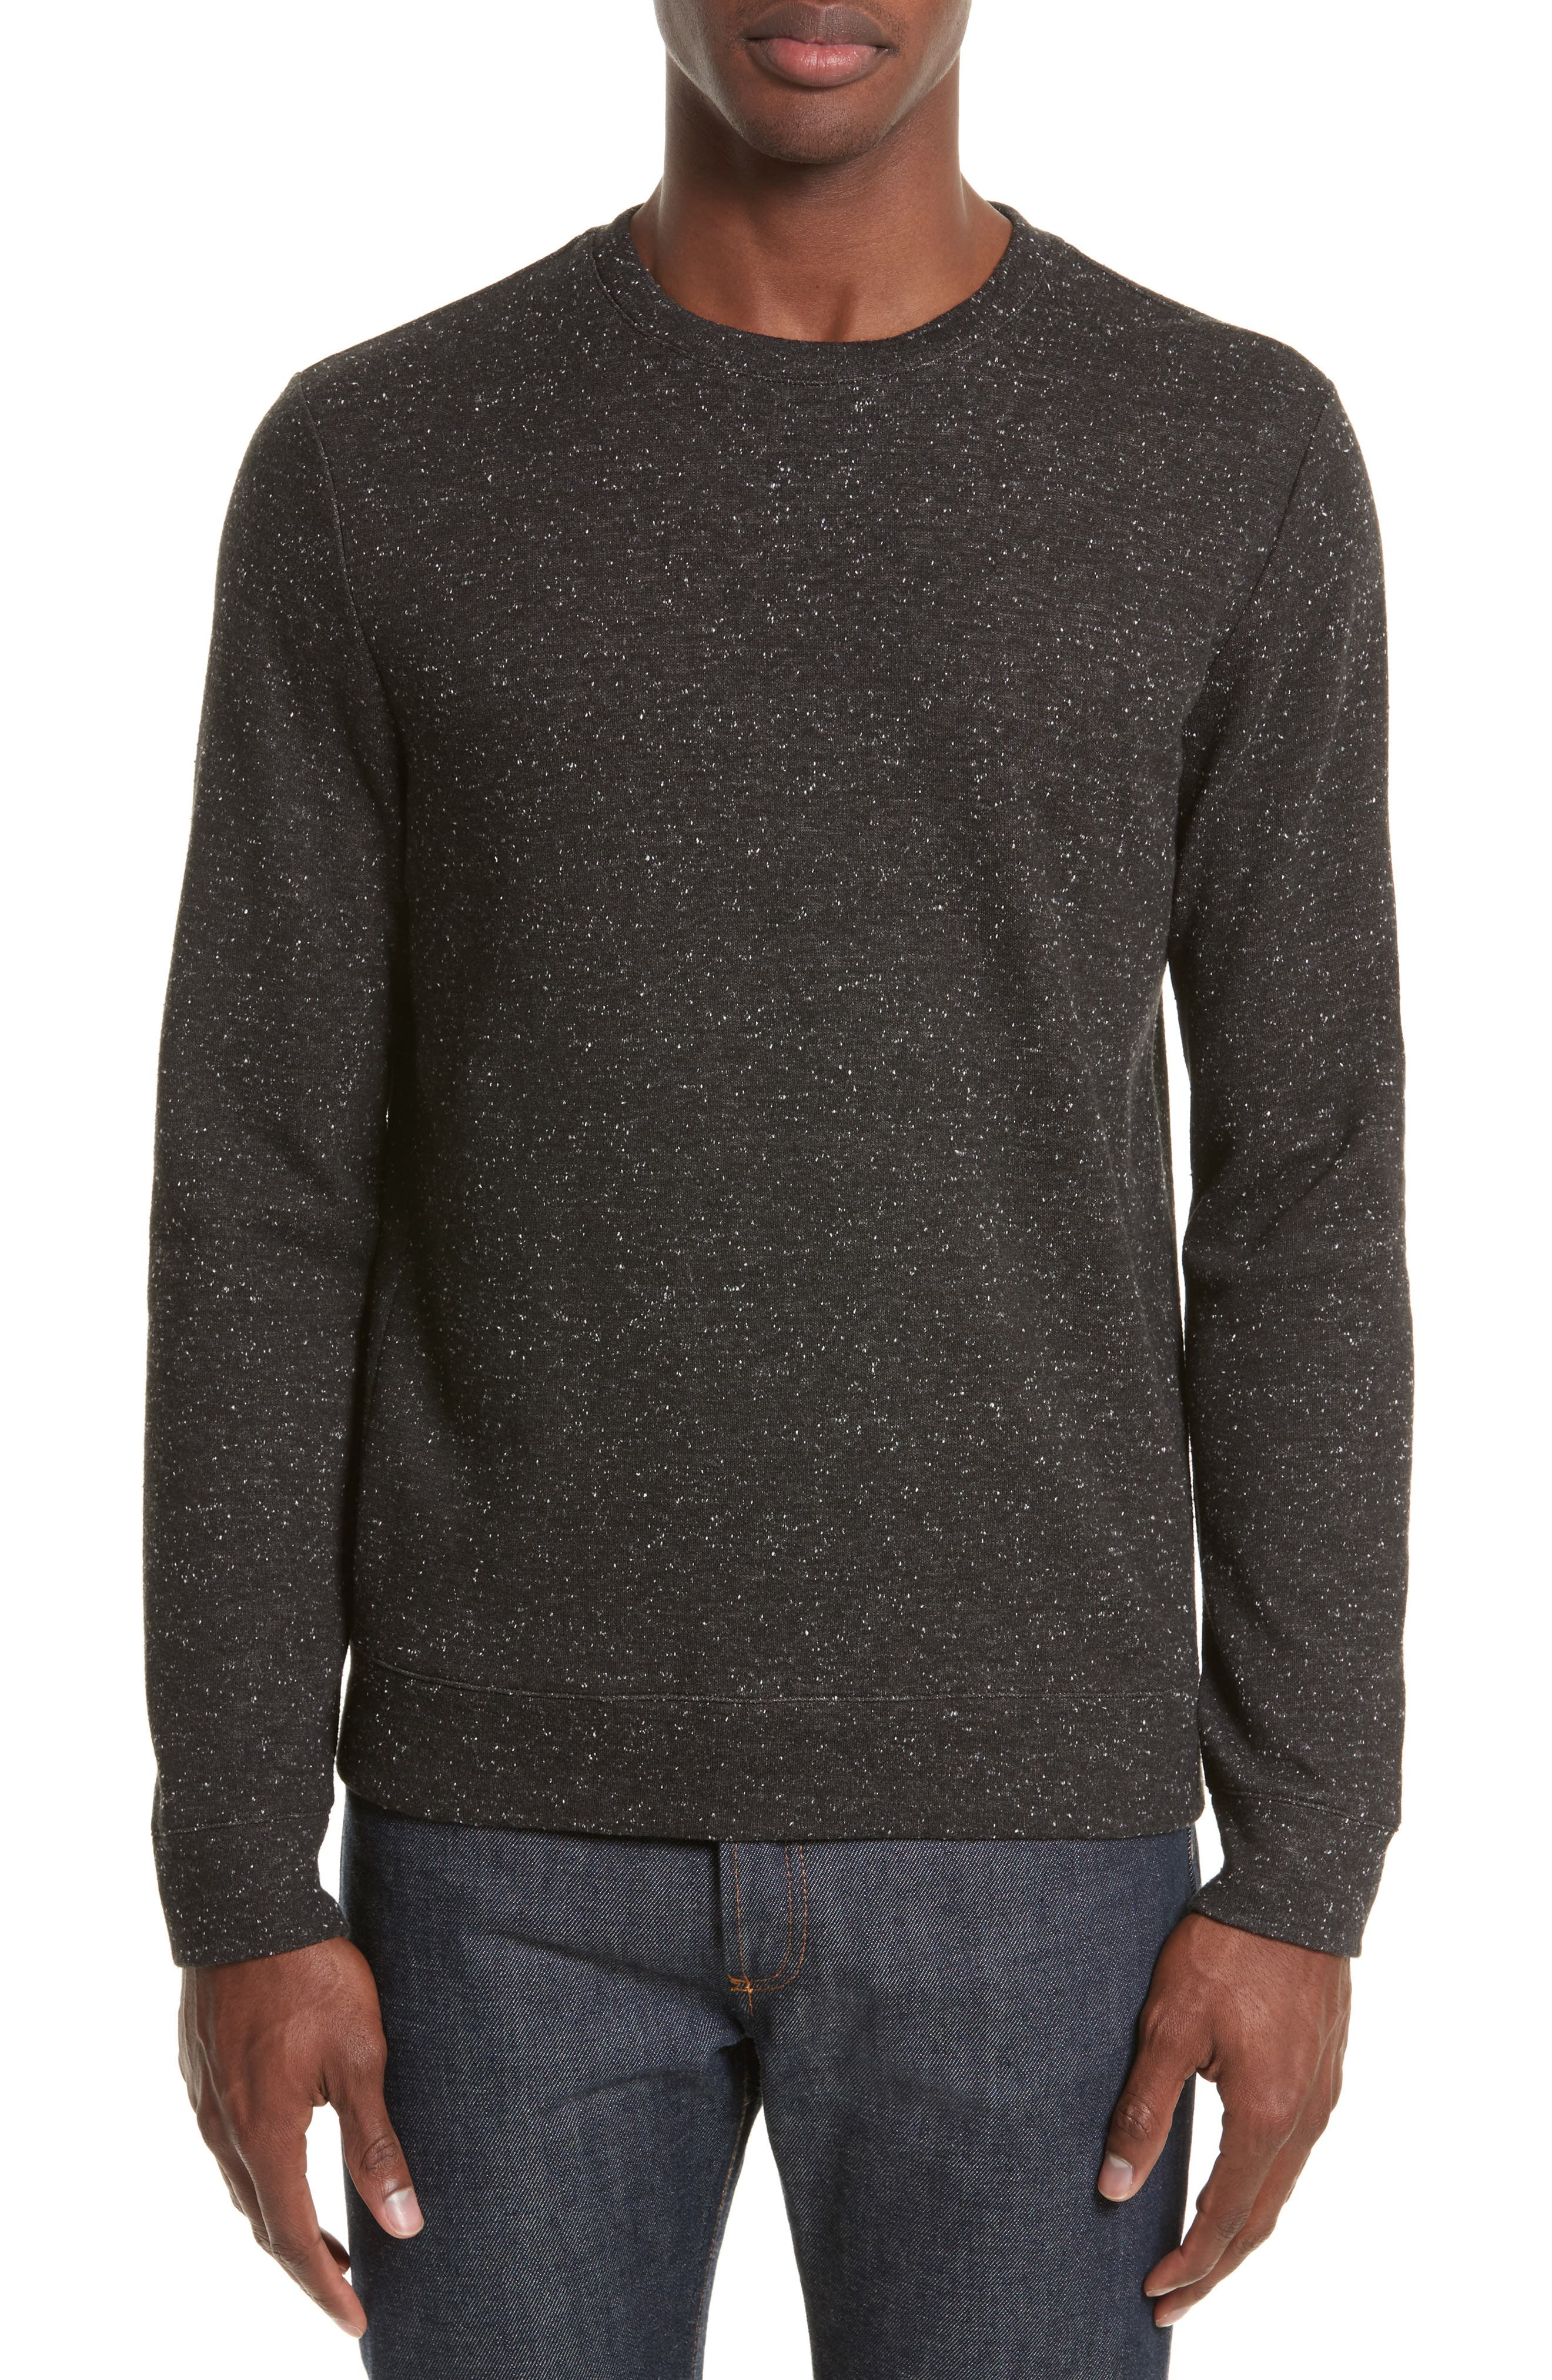 Speckle Sweat Track Sweater,                             Main thumbnail 1, color,                             065